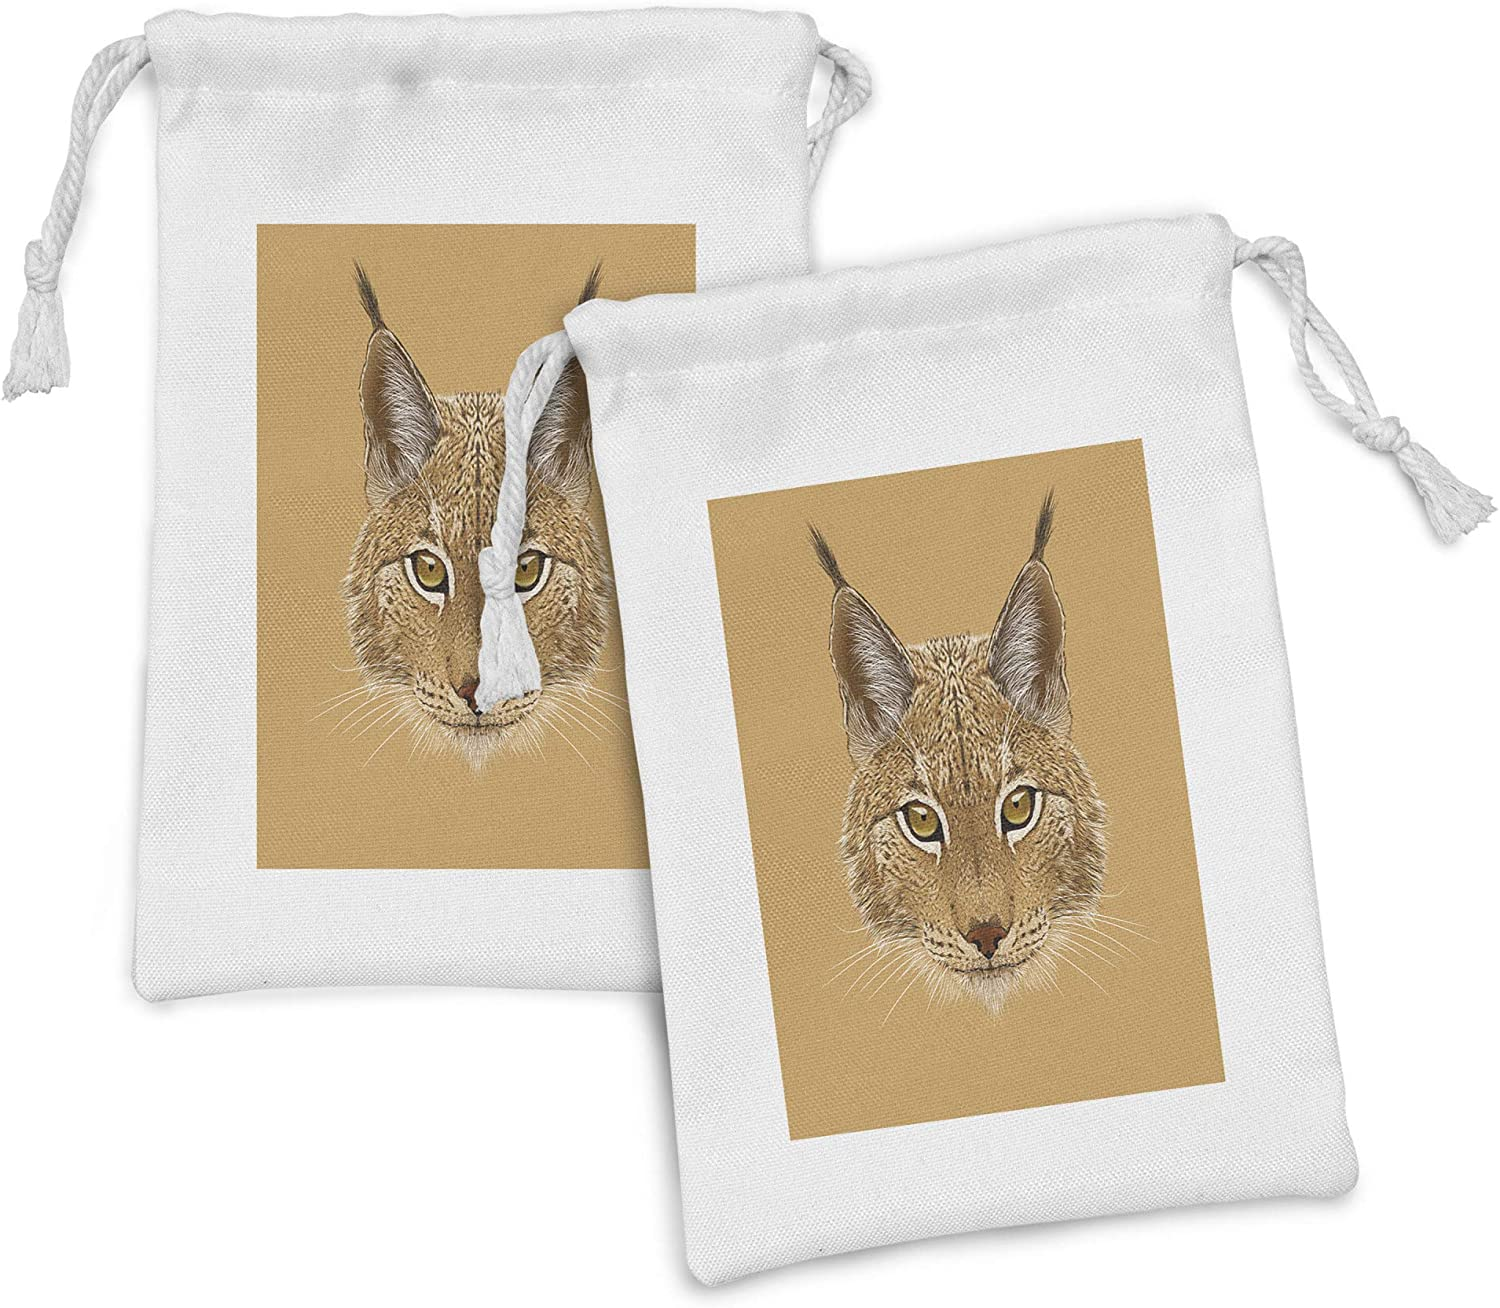 Lunarable Now on sale Animal sale Fabric Pouch Set of Portrait Lynx S with Cat 2